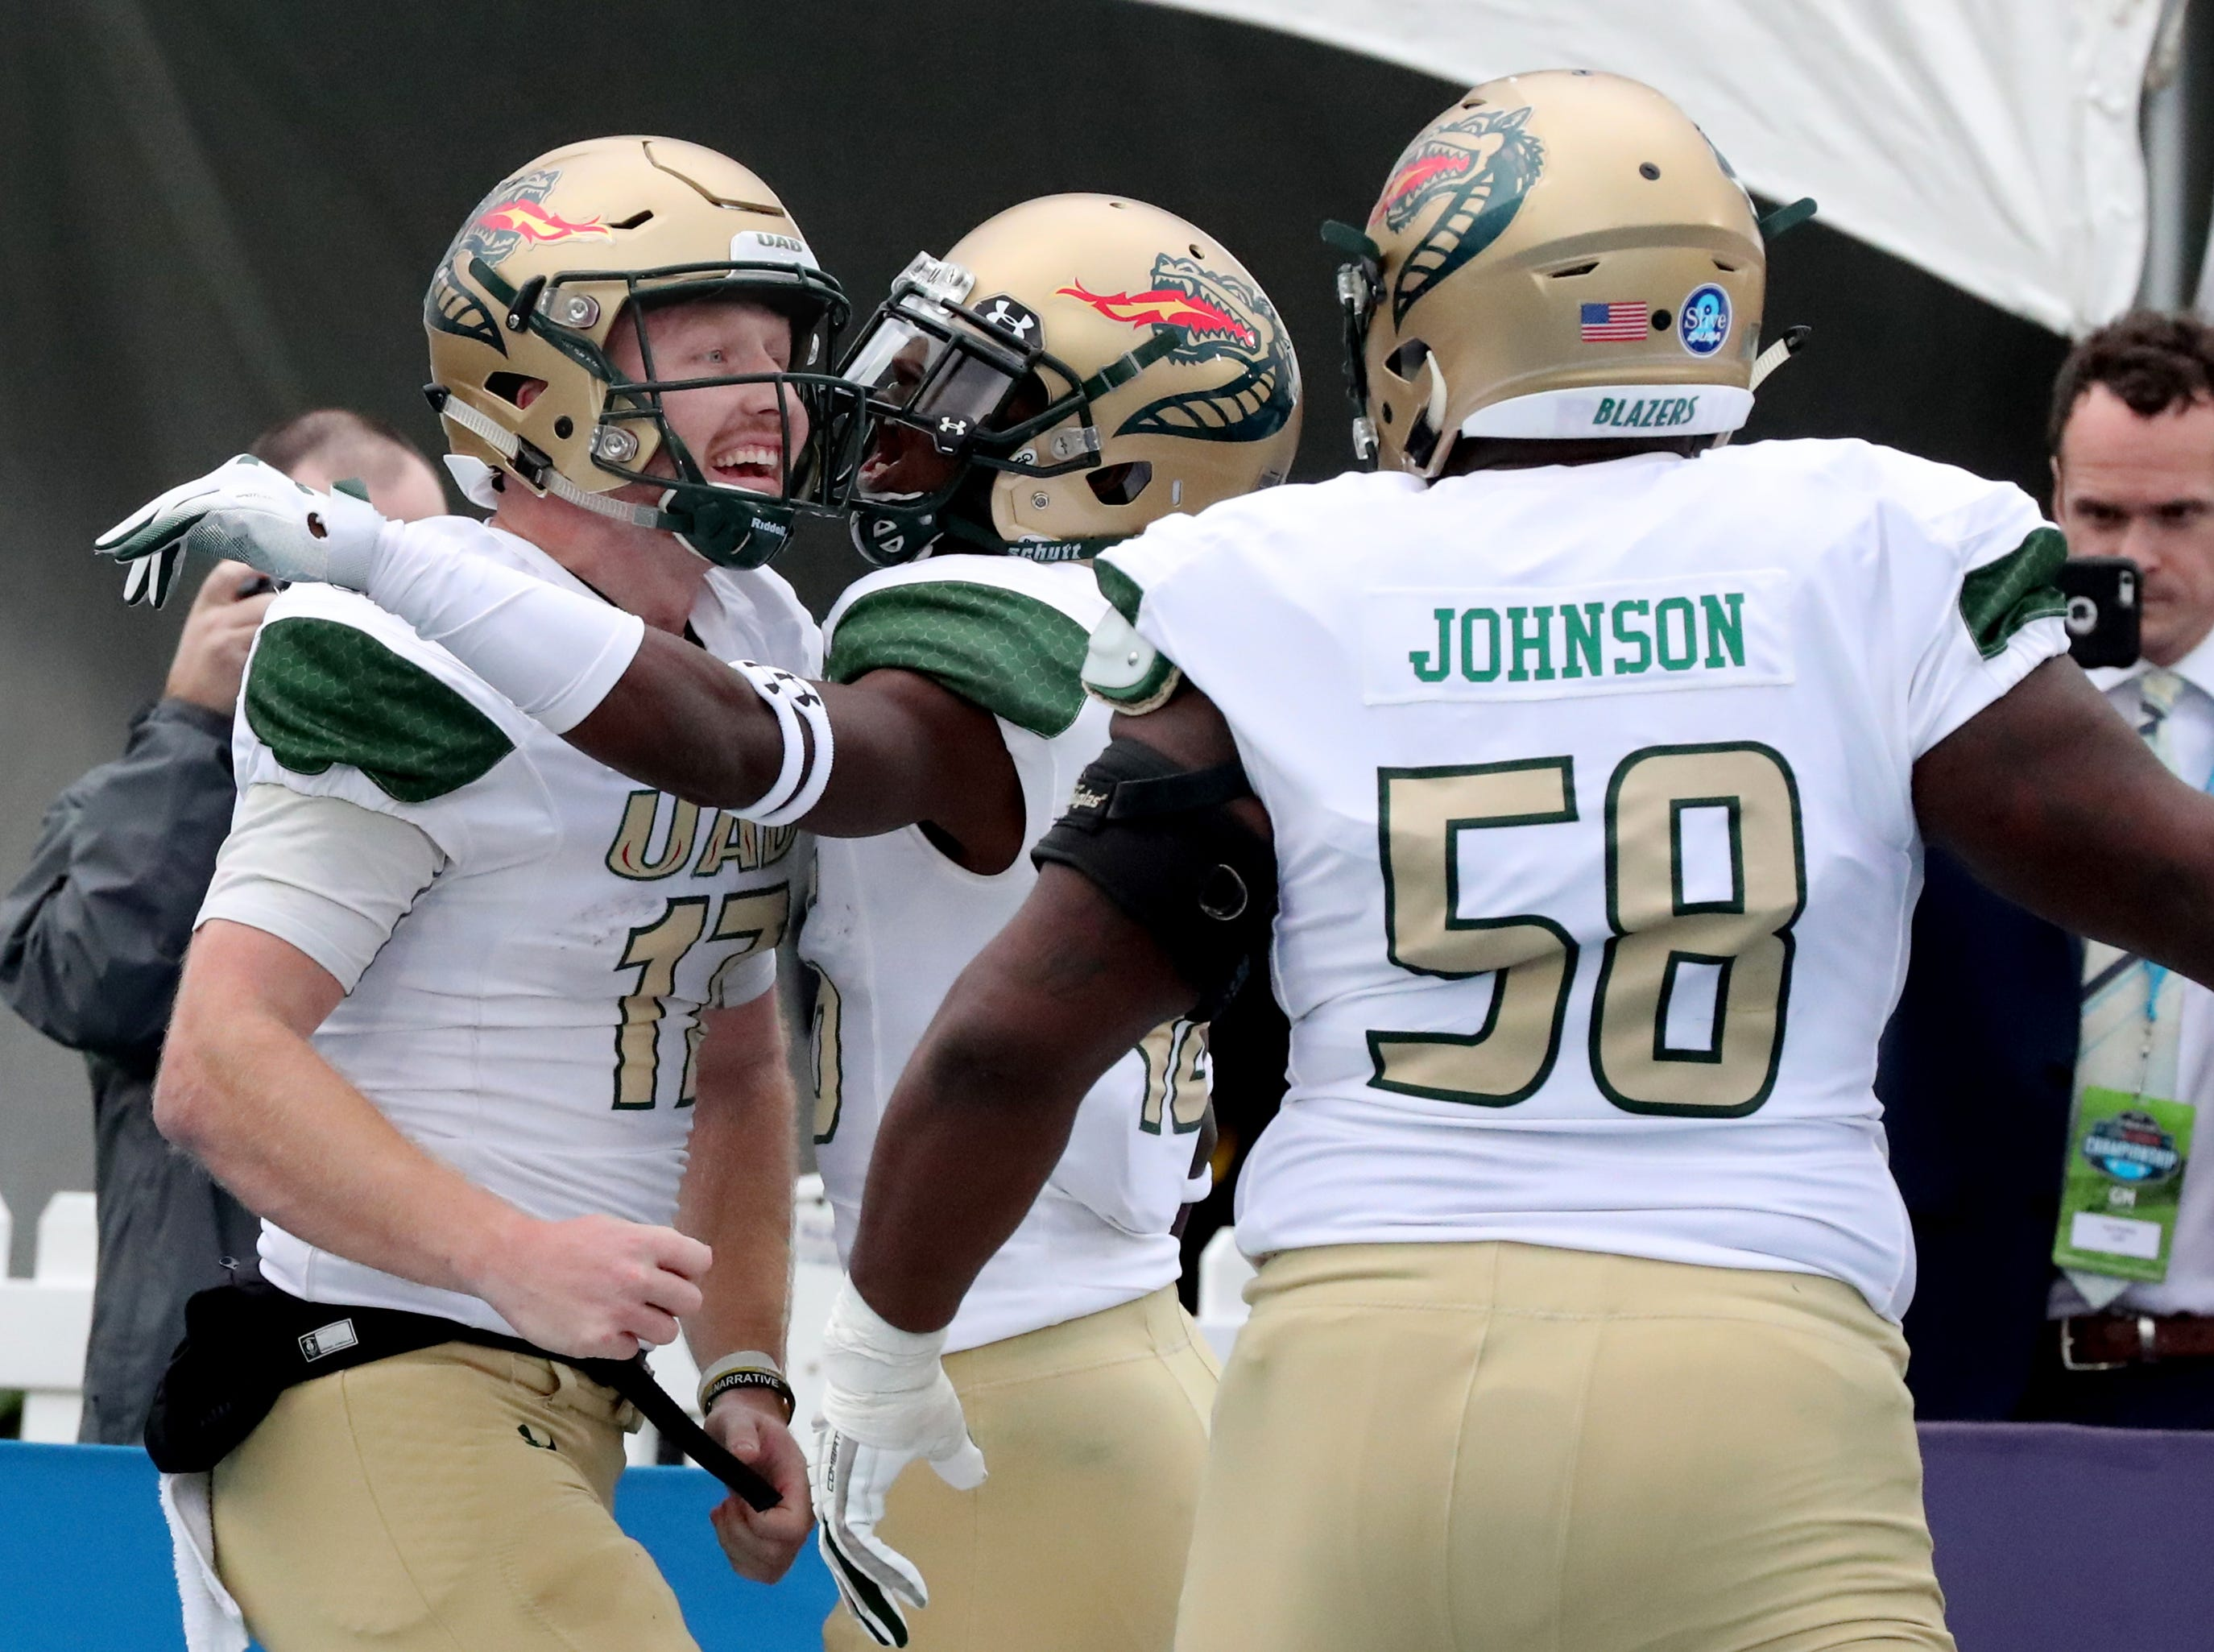 UAB's quarterback Tyler Johnston III (17) celebrates his touchdown with wide receiver Kendall Parham (16) and offensive lineman Malique Johnson (58) during the Conference USA Championship at MTSU on Saturday, Dec. 1, 2018, against MTSU.